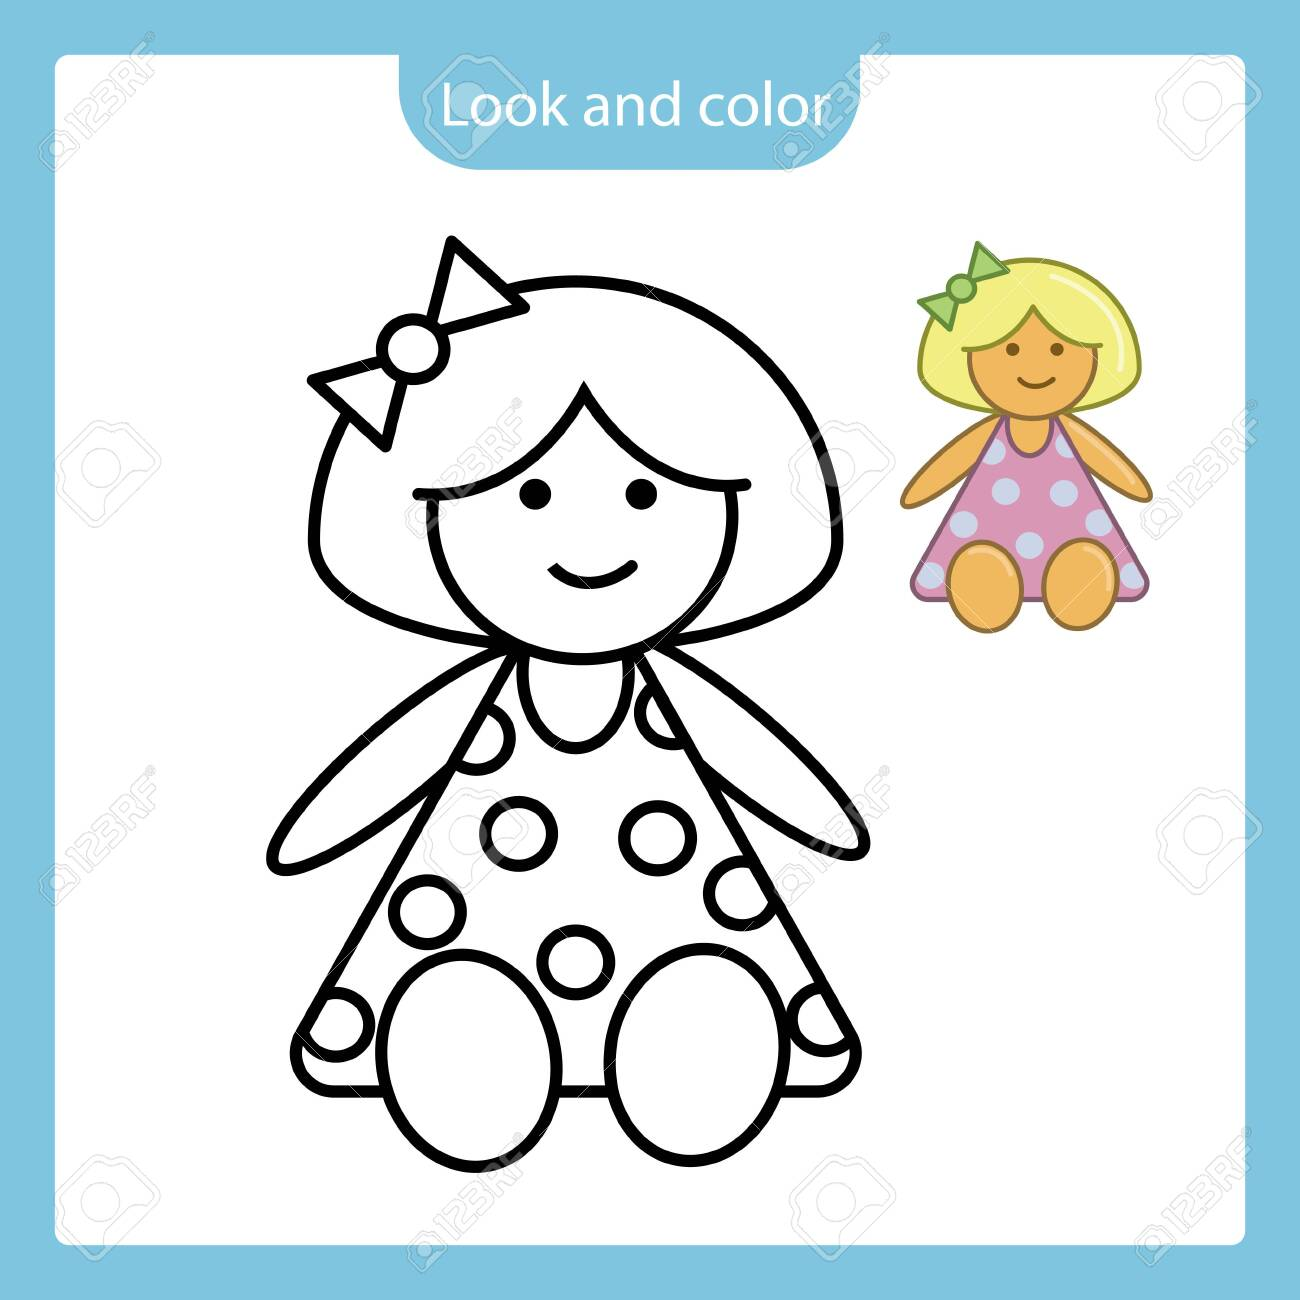 Look And Color Coloring Page Outline Of Doll Toy With Example Royalty Free Cliparts Vectors And Stock Illustration Image 140908959